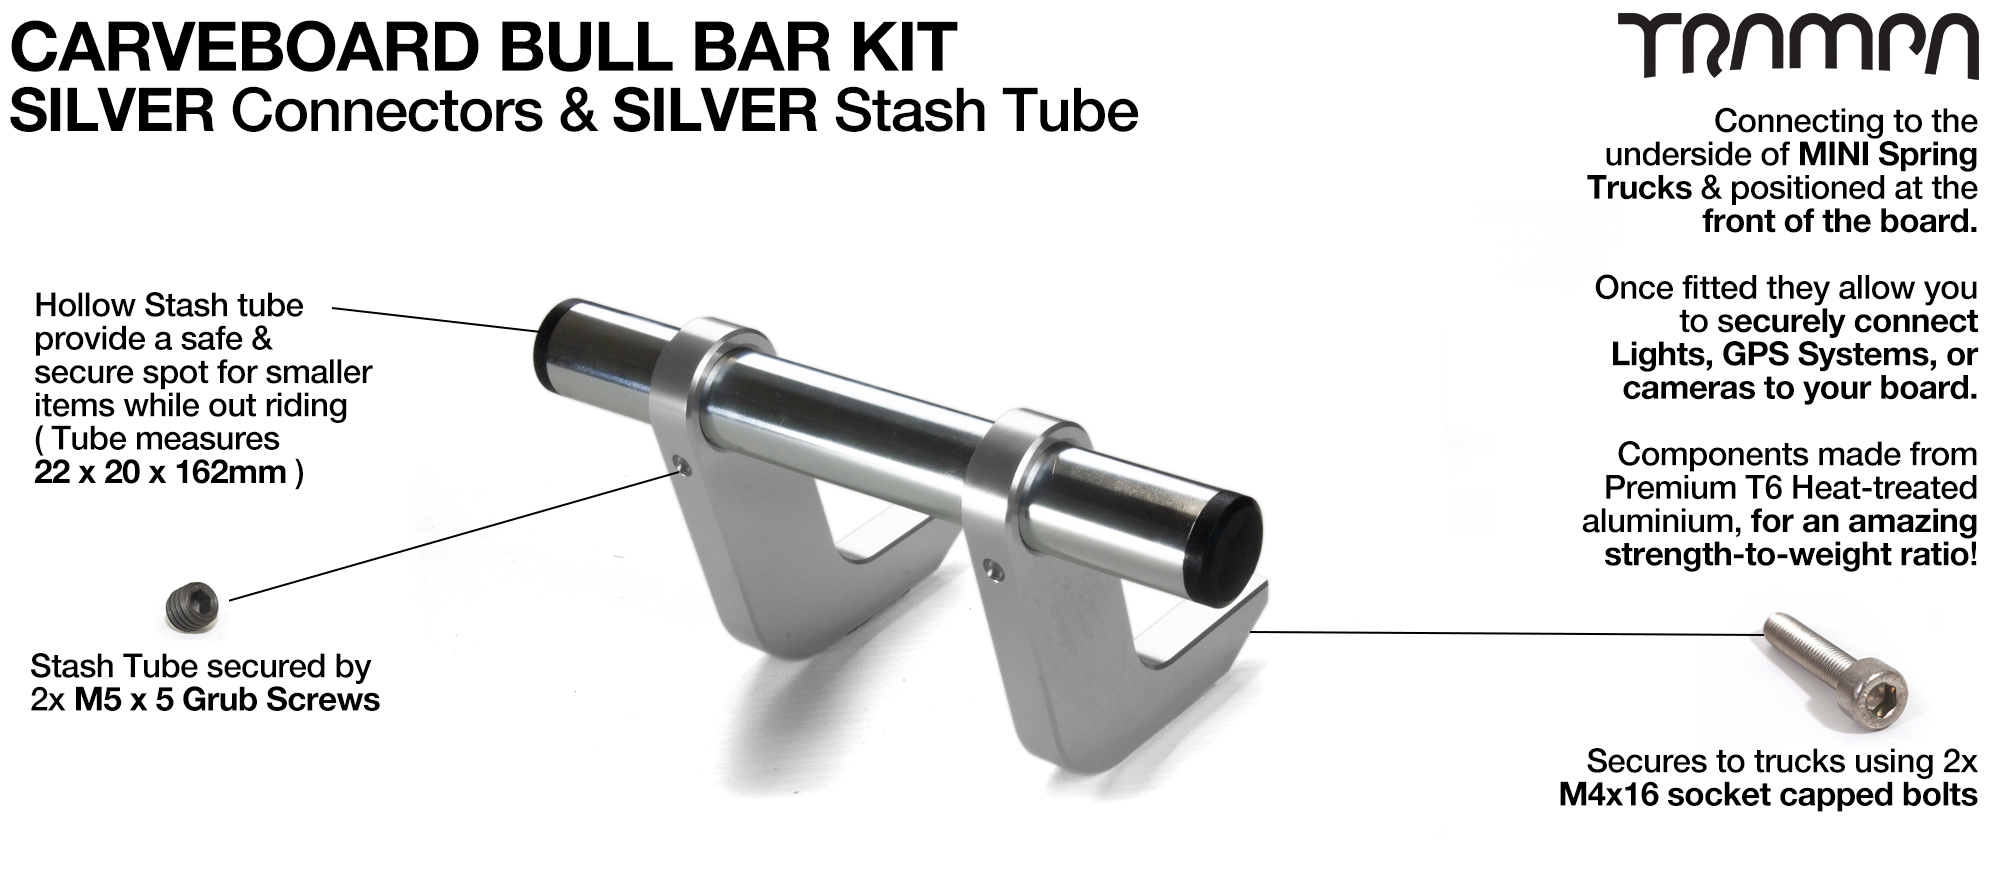 SILVER Uprights & SILVER Crossbar BULL BARS for CARVE BOARDS using T6 Heat Treated CNC'd Aluminum Clamps, Hollow Aluminium Stash Tubes with Rubber end bungs